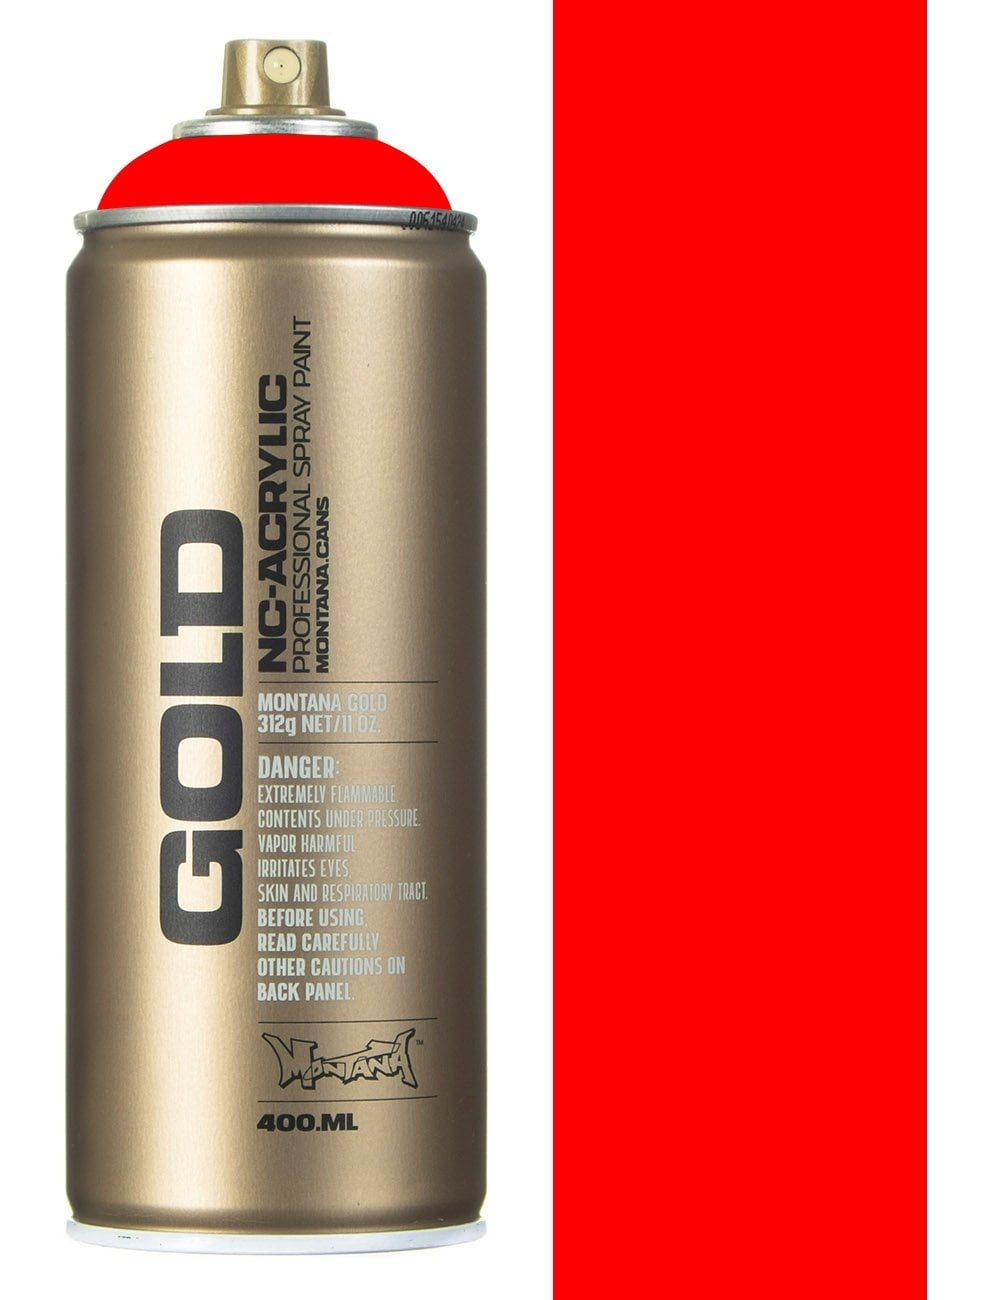 Montana Gold Flourescent Fire Red Spray Paint 400ml Spray Paint Supplies From Fat Buddha